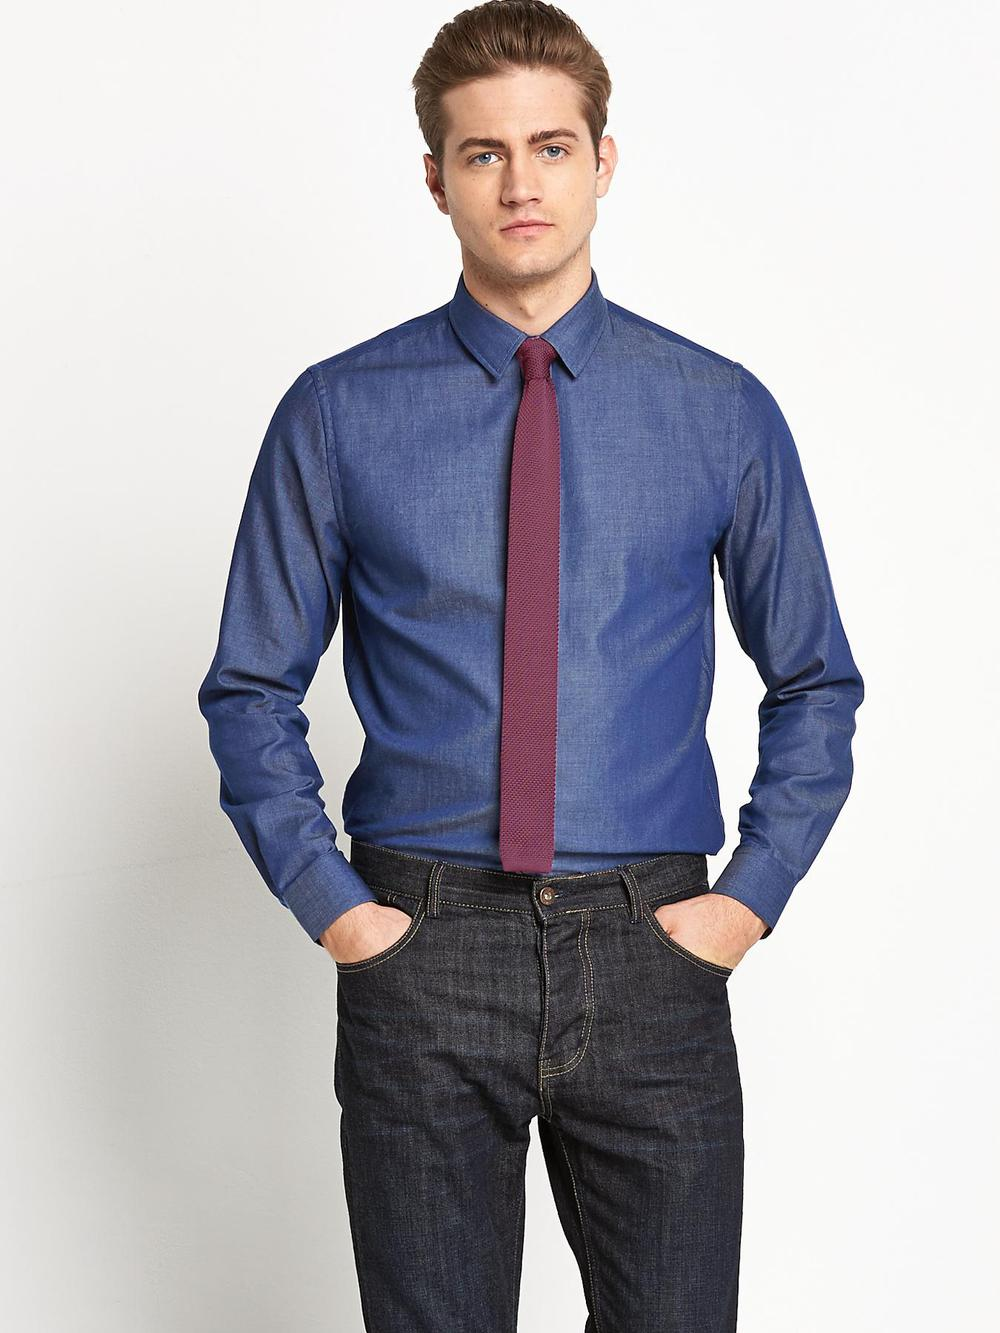 Mens dress shirt tie sets have been a great way to look your very best when you're wearing a Double Breasted Suit and prefer not to stress over which shirt and tie matches what suit you're wearing. These versatile combos have the bonus that a professional designer already did the footwork for you.